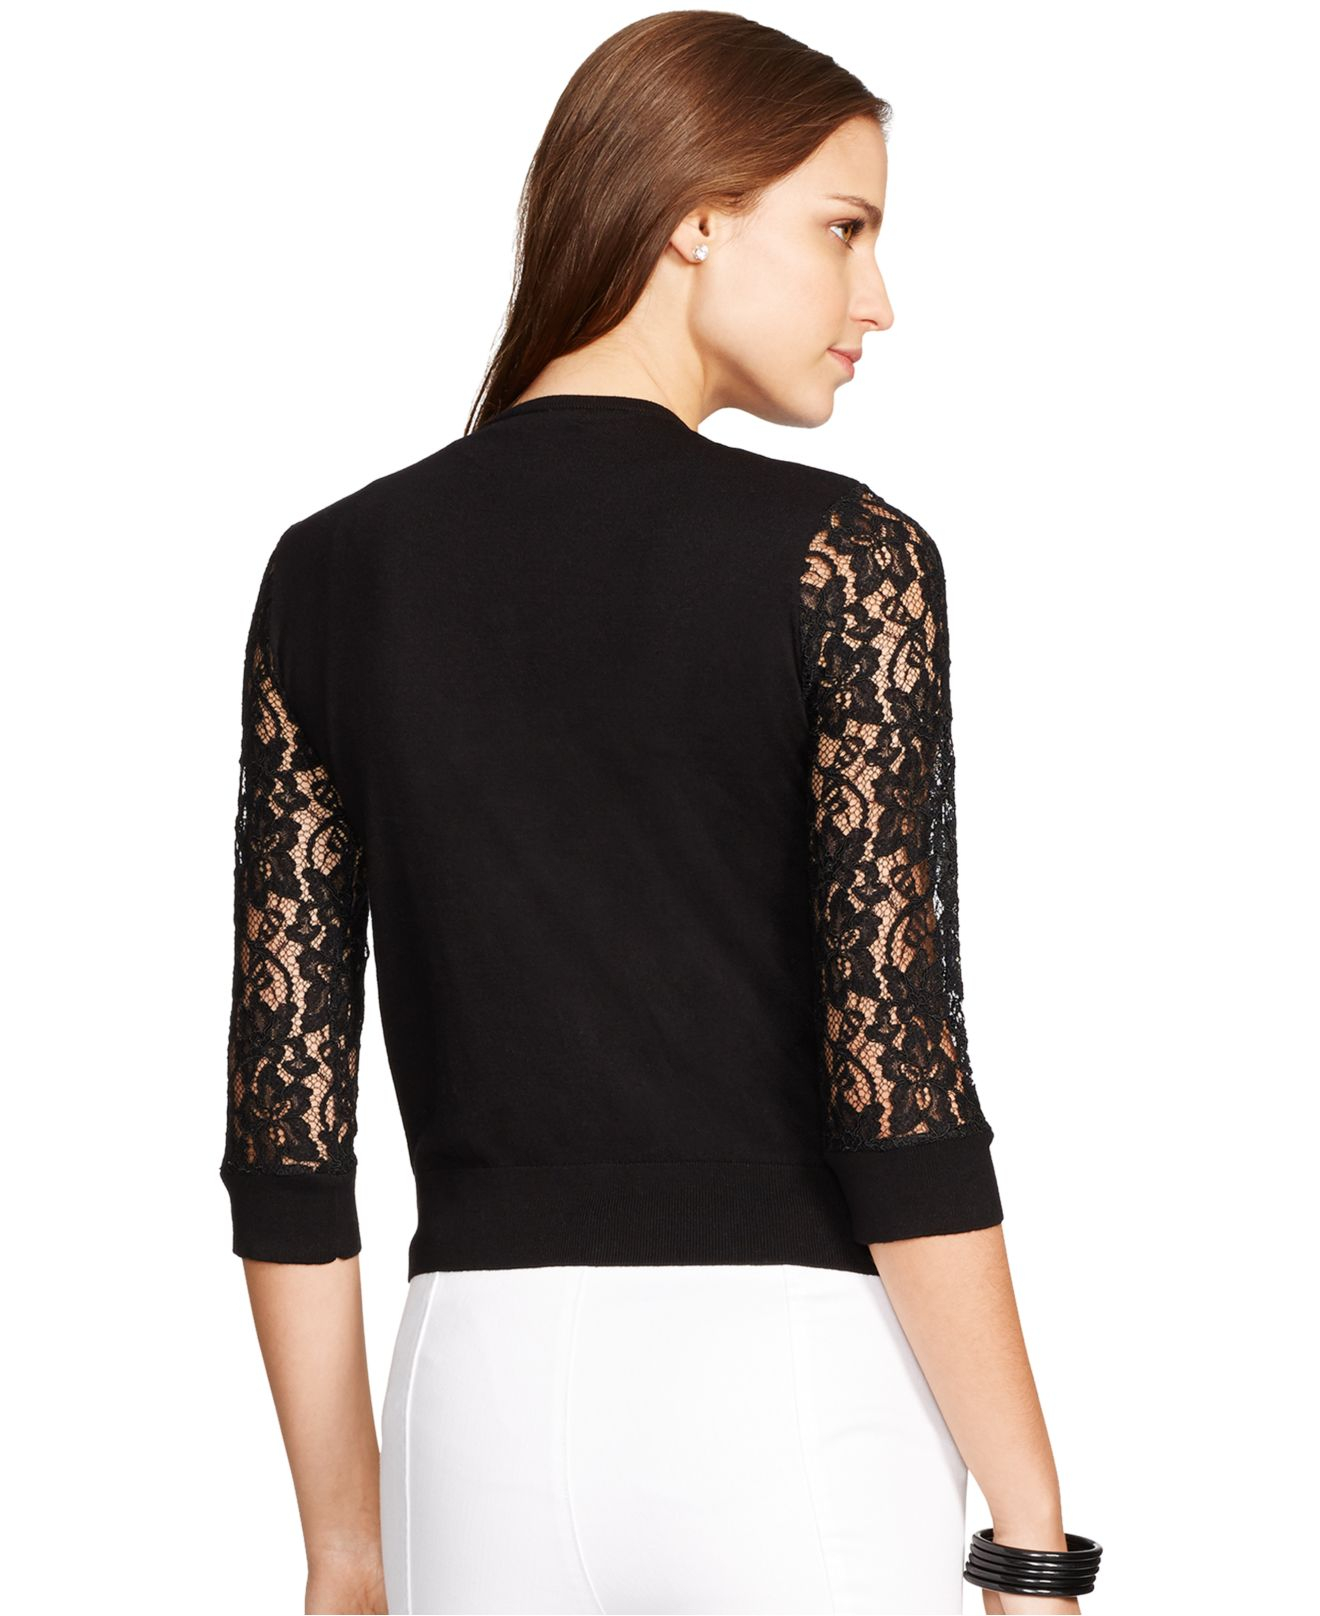 Lauren by ralph lauren Lace-Sleeve Cardigan in Black | Lyst